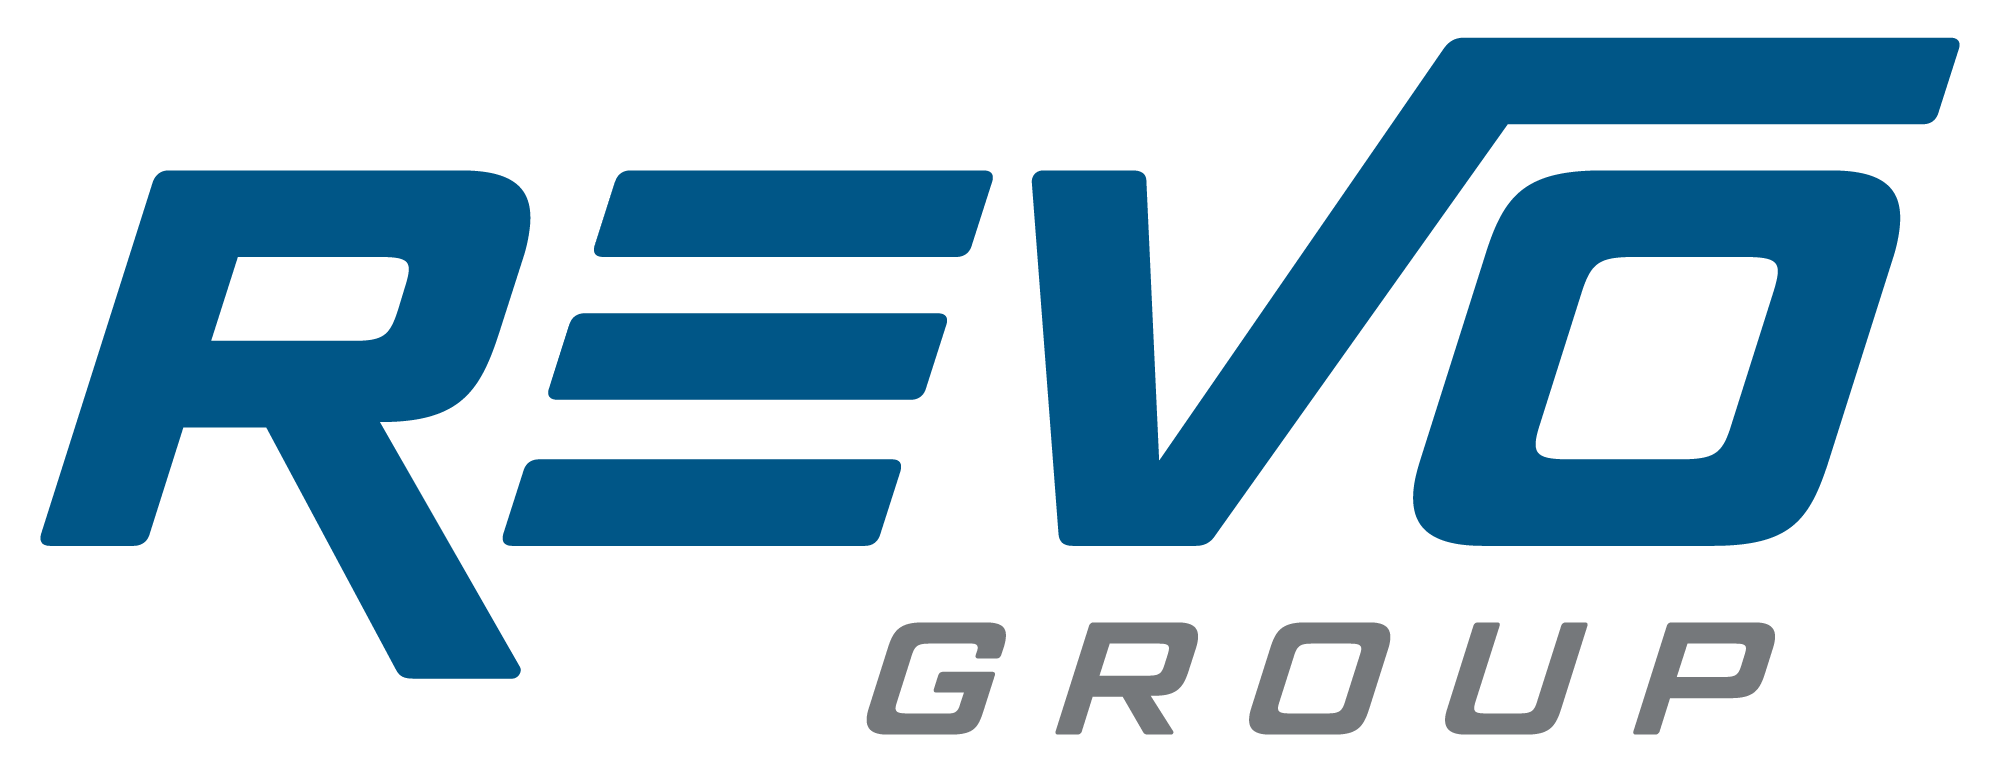 Revo Group | Revolution in Reliability | Innovate. Inspect. Inform.